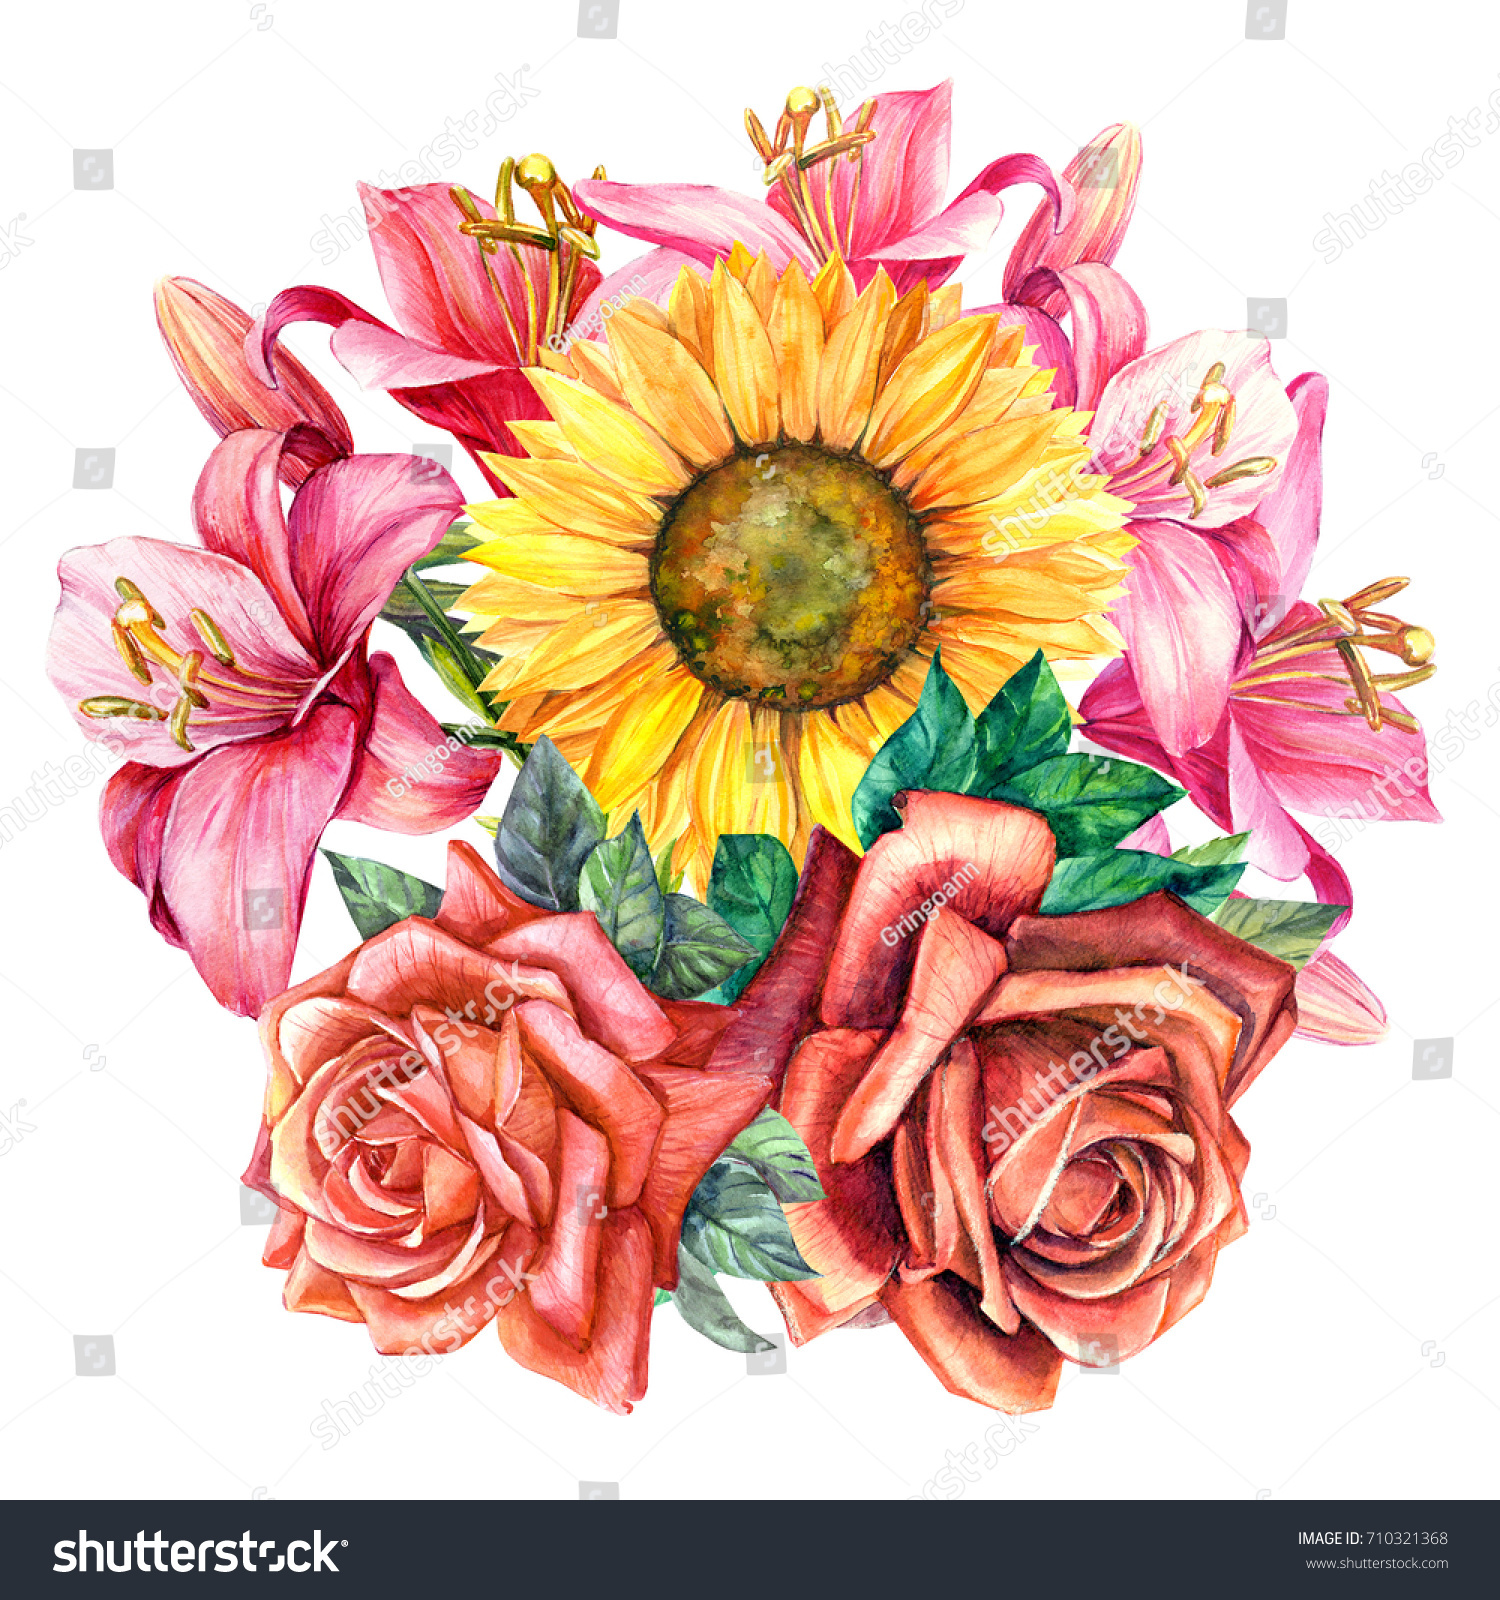 Bouquet flowers lily roses sunflower watercolor stock illustration bouquet of flowers lily roses sunflower watercolor hand drawing izmirmasajfo